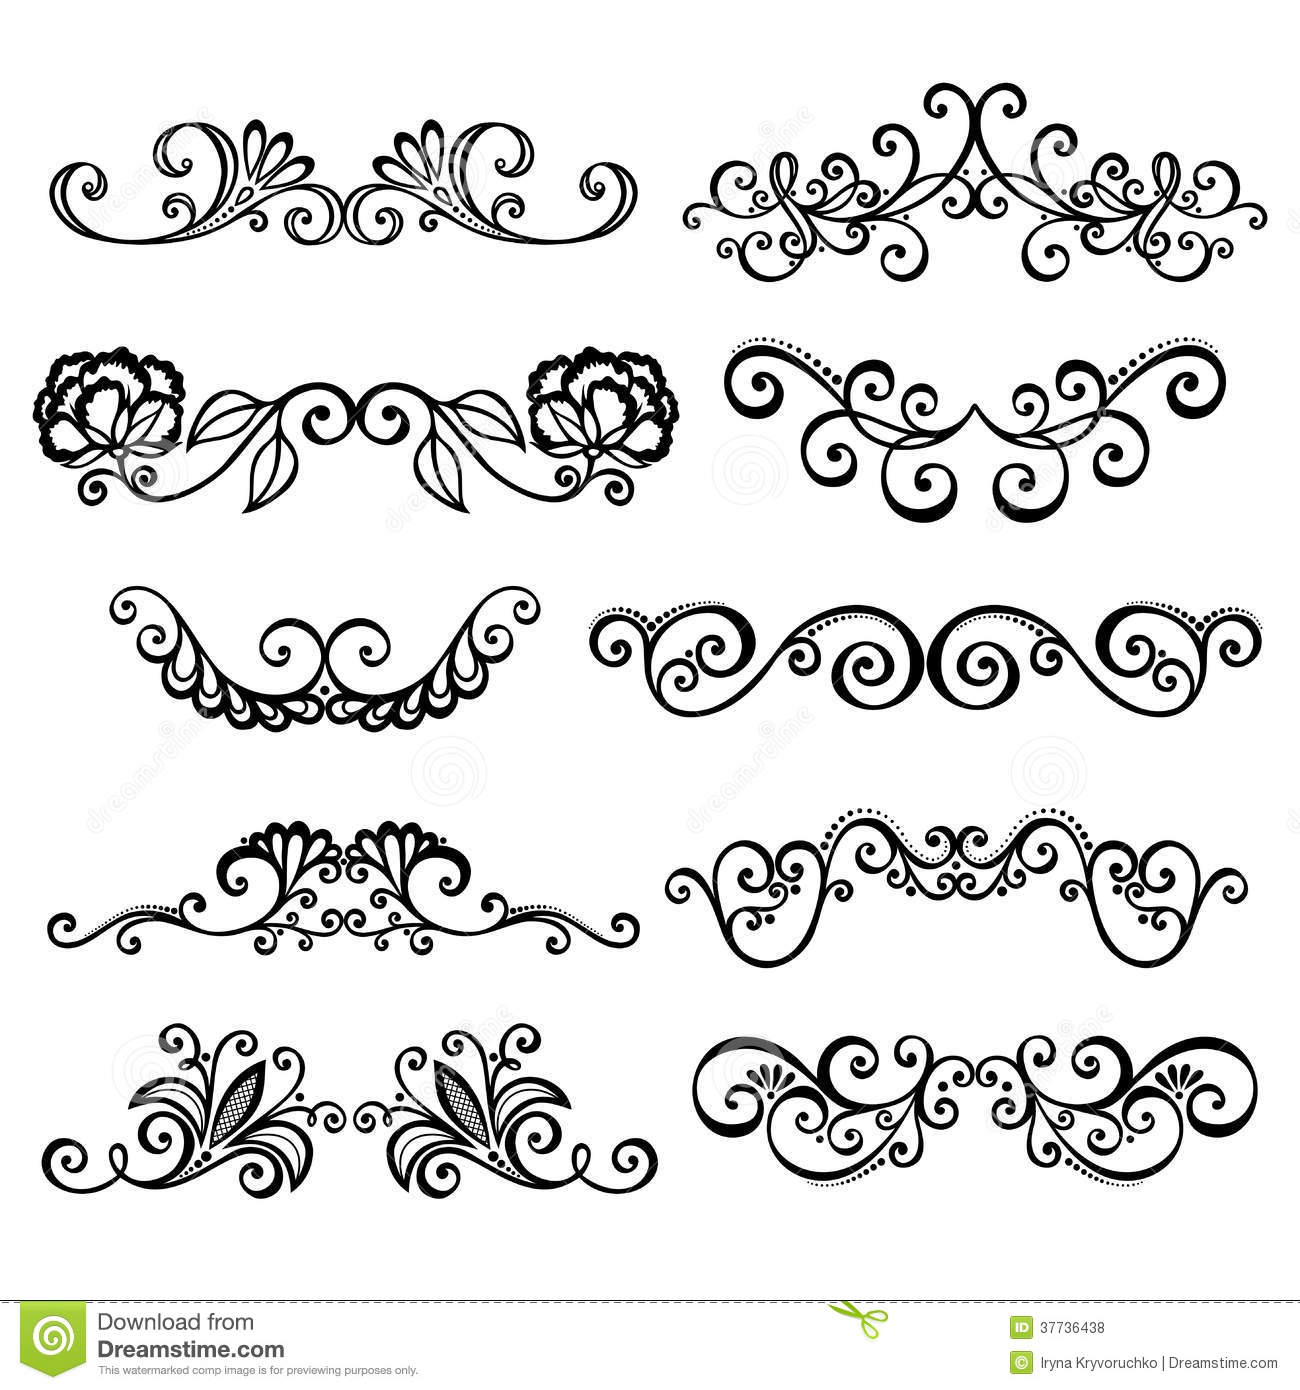 Calligraphic Borders Anctor D Page Decoration Royalty Free Stock Photos - Image: 37736438